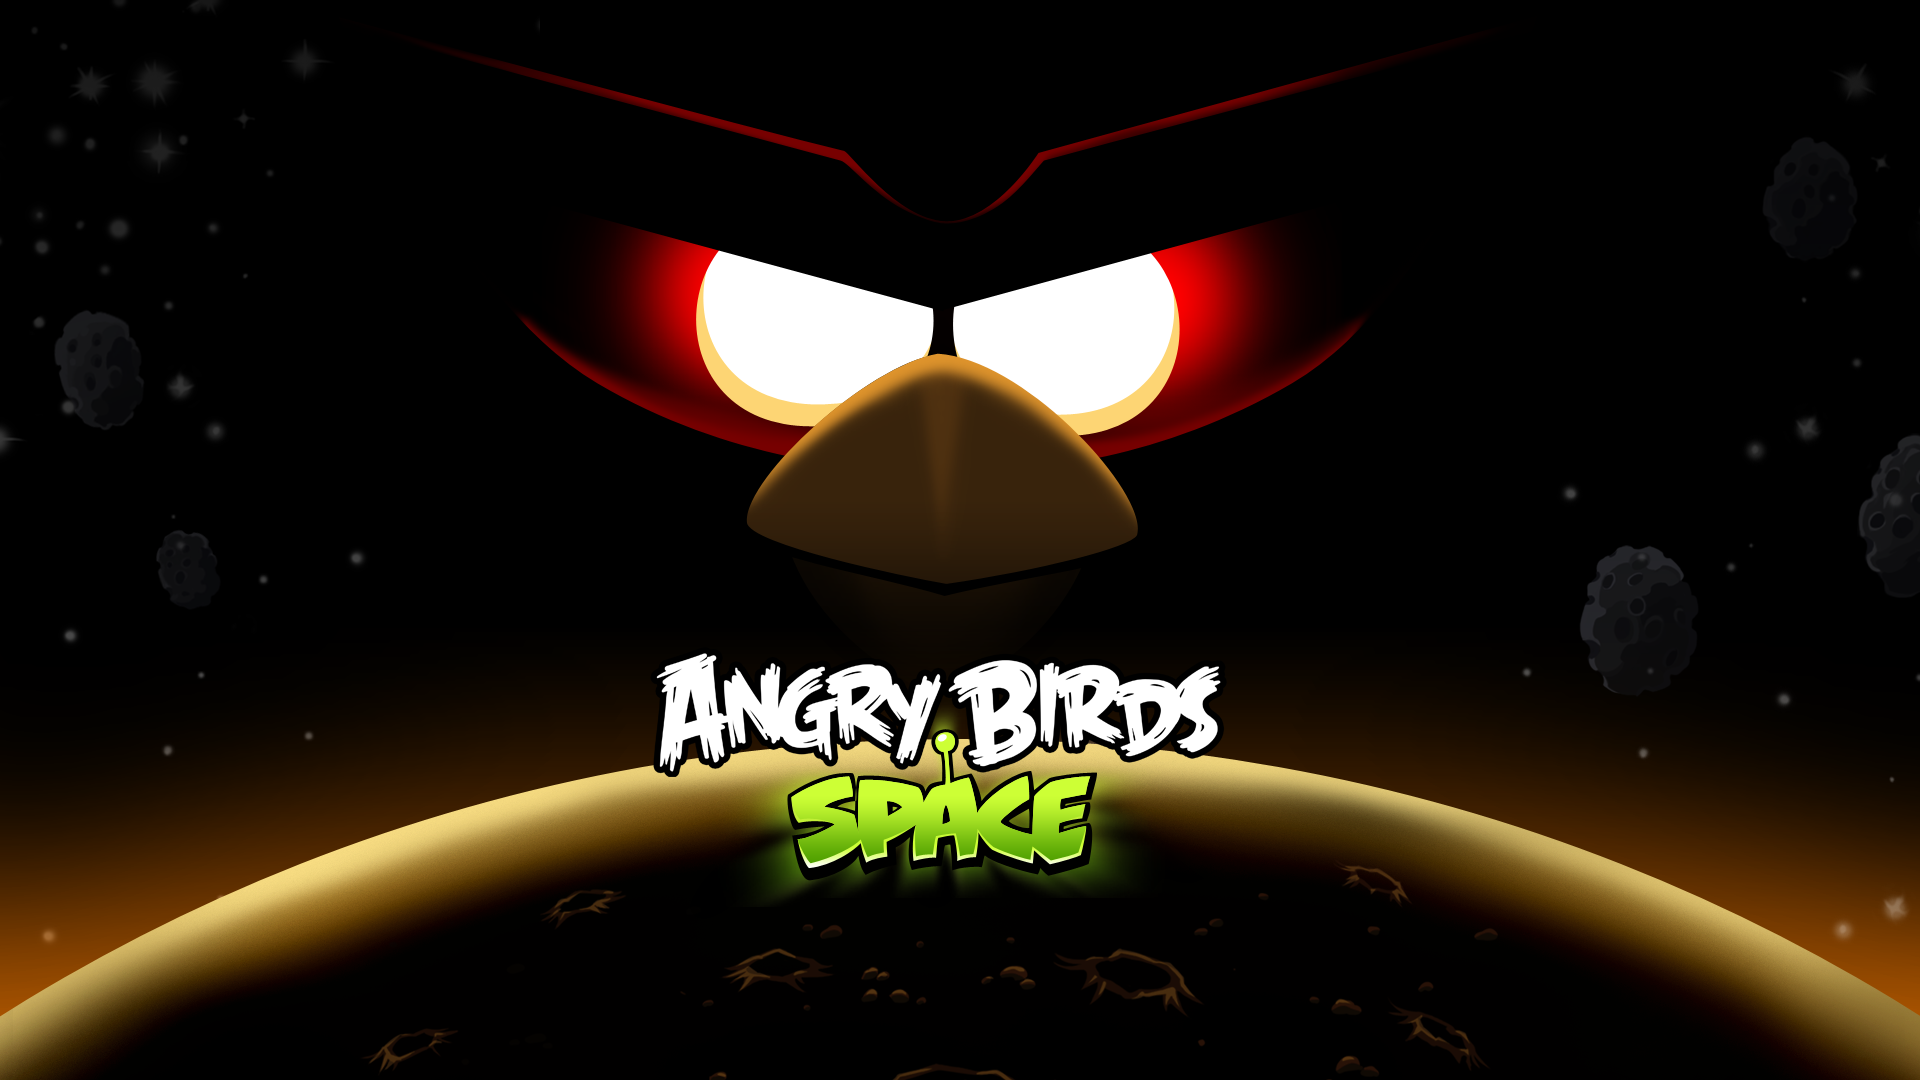 Wallpaper Hd 1080p Angry Birds Free Download For Desktop Themes Wallpaper